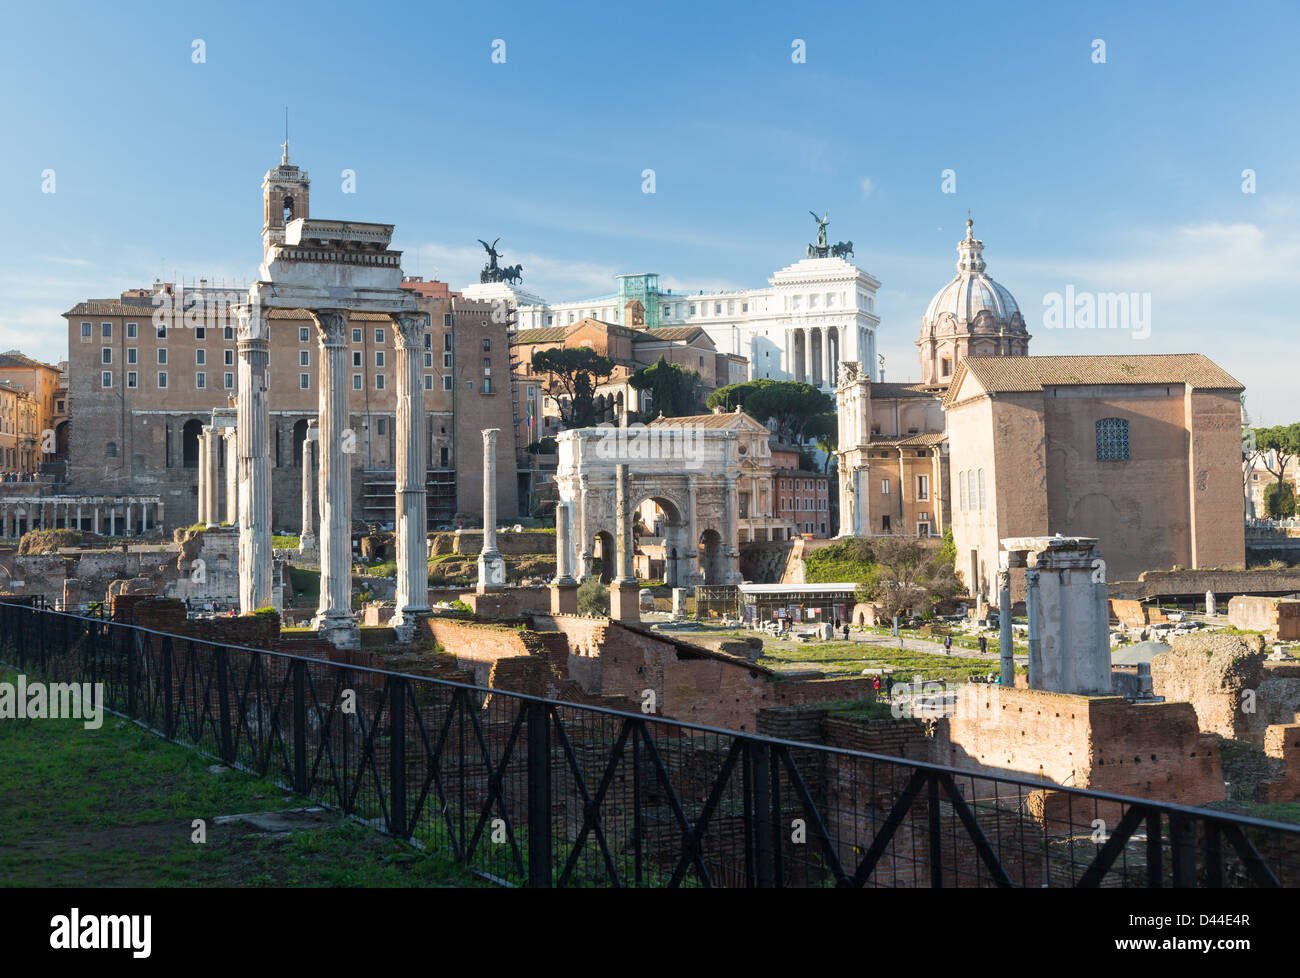 Temple of Castor and Pollux in the Forum, Rome - Stock Image